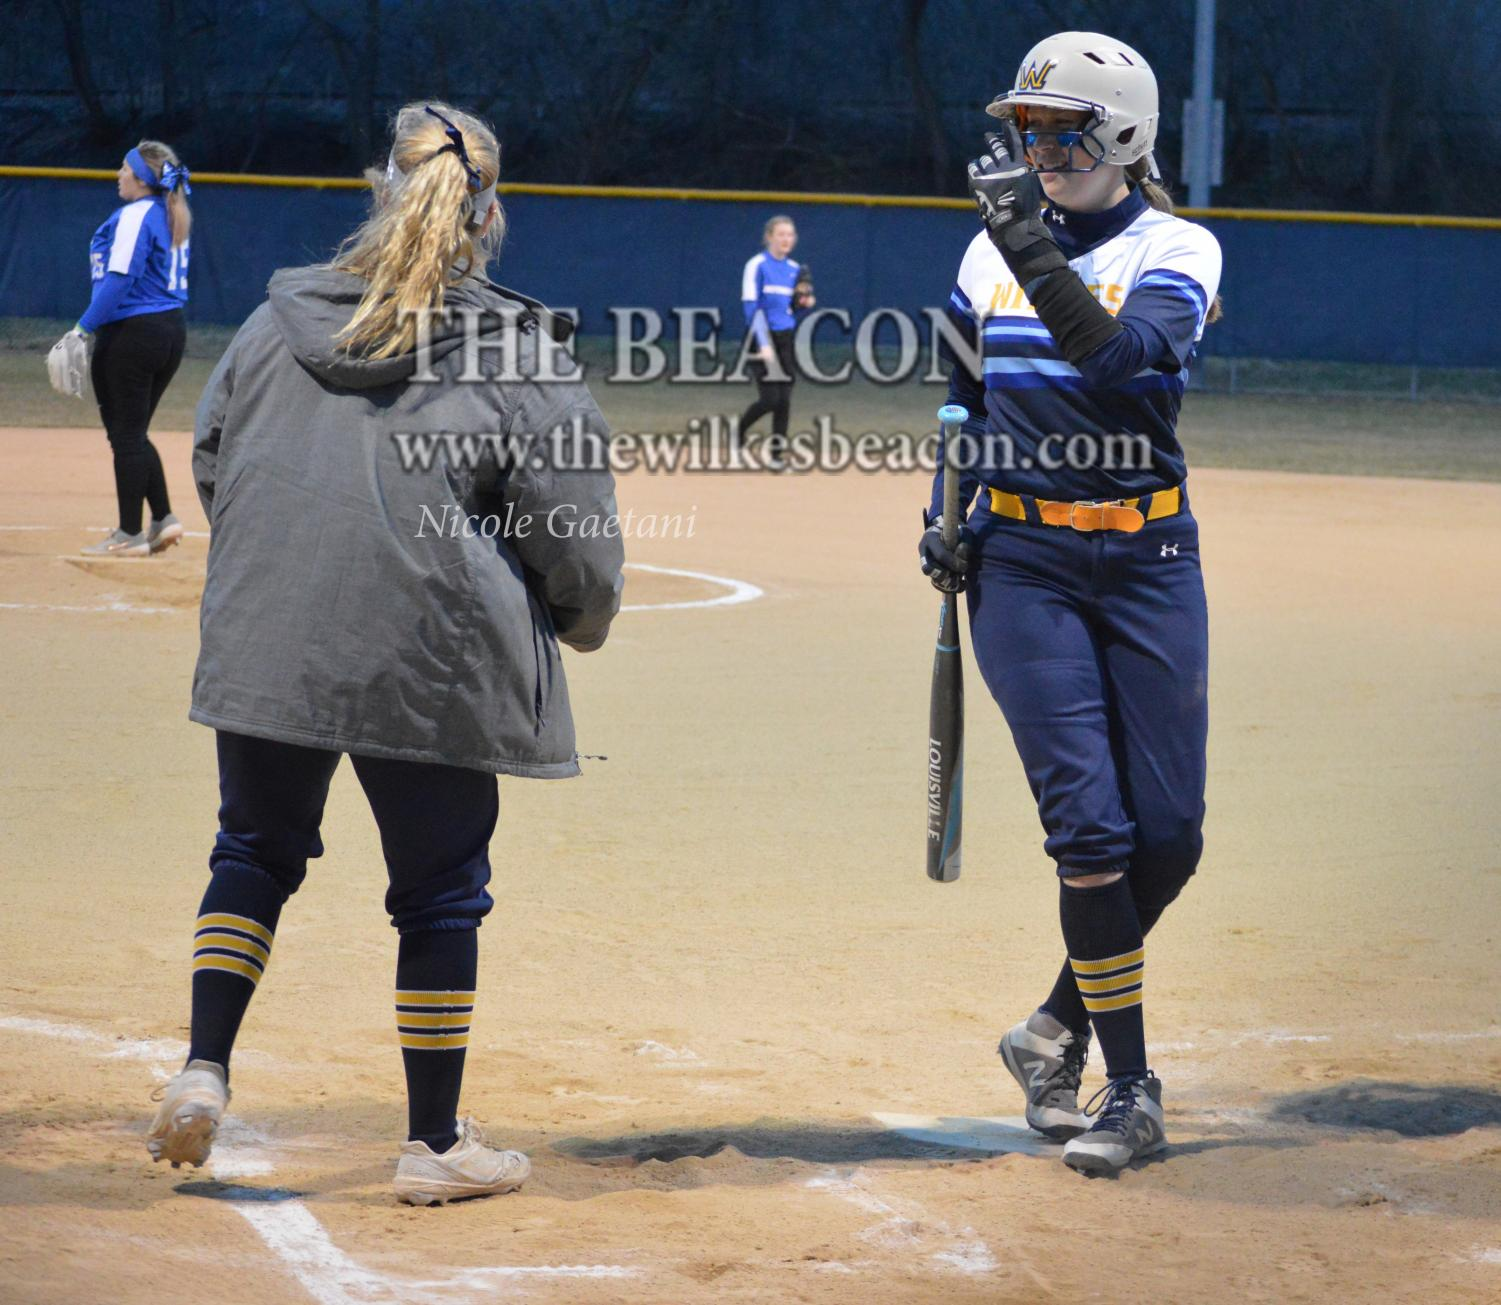 Senior outfielder Haley Welker signaled to her teammates with a smile on her face during the doubleheader against Clarks Summit last Wednesday.